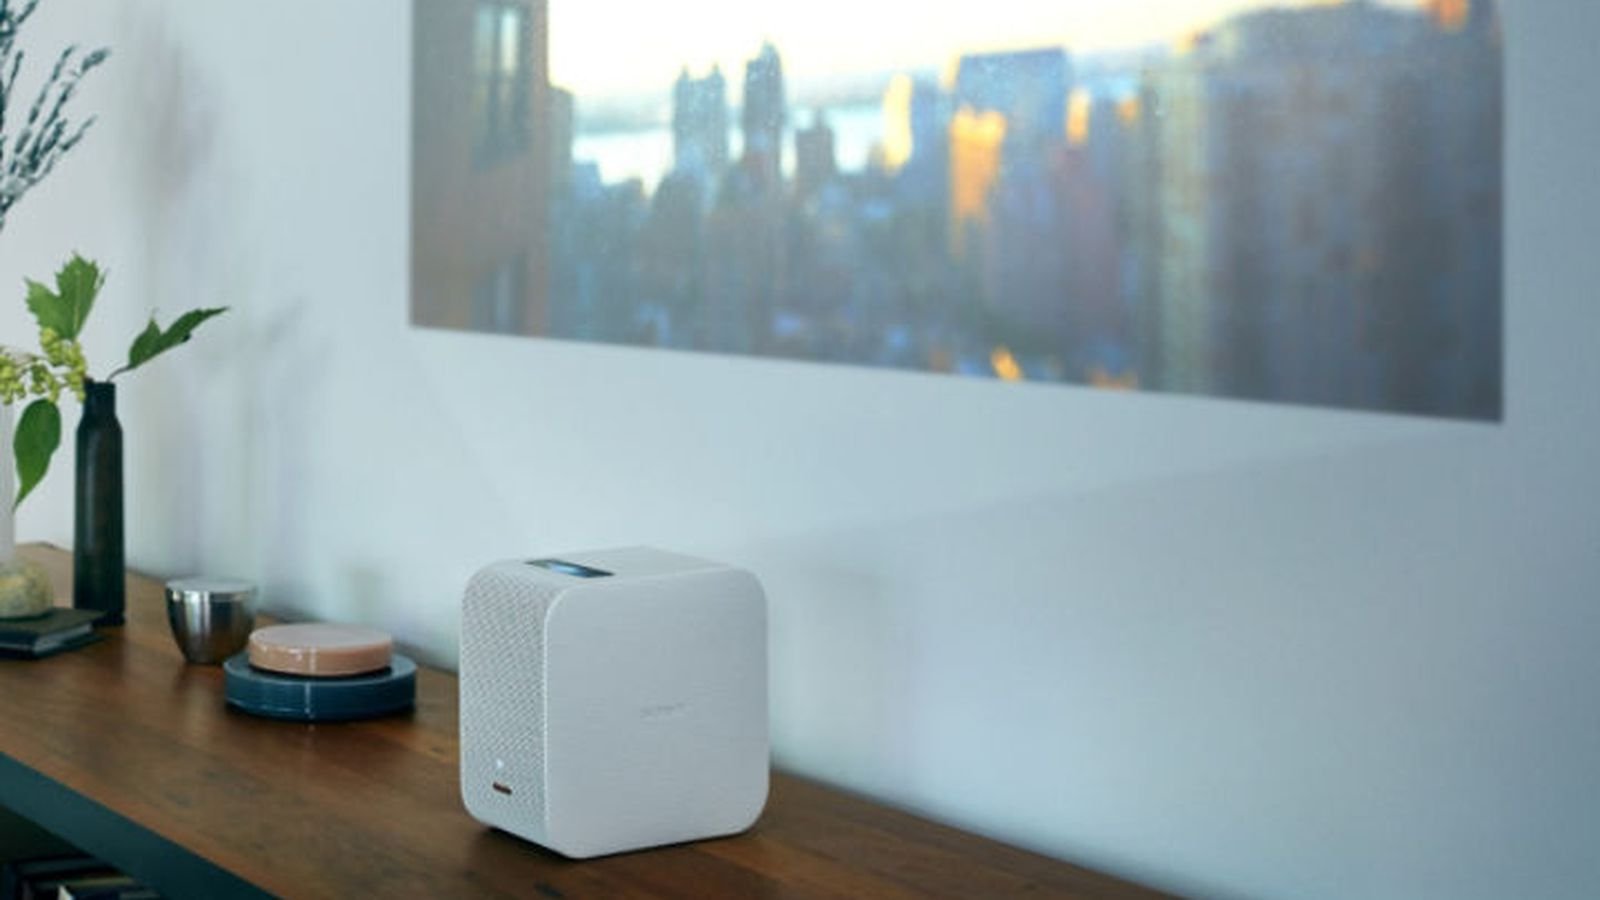 Sonys Portable Ultra Short Throw Projector Will Turn Any